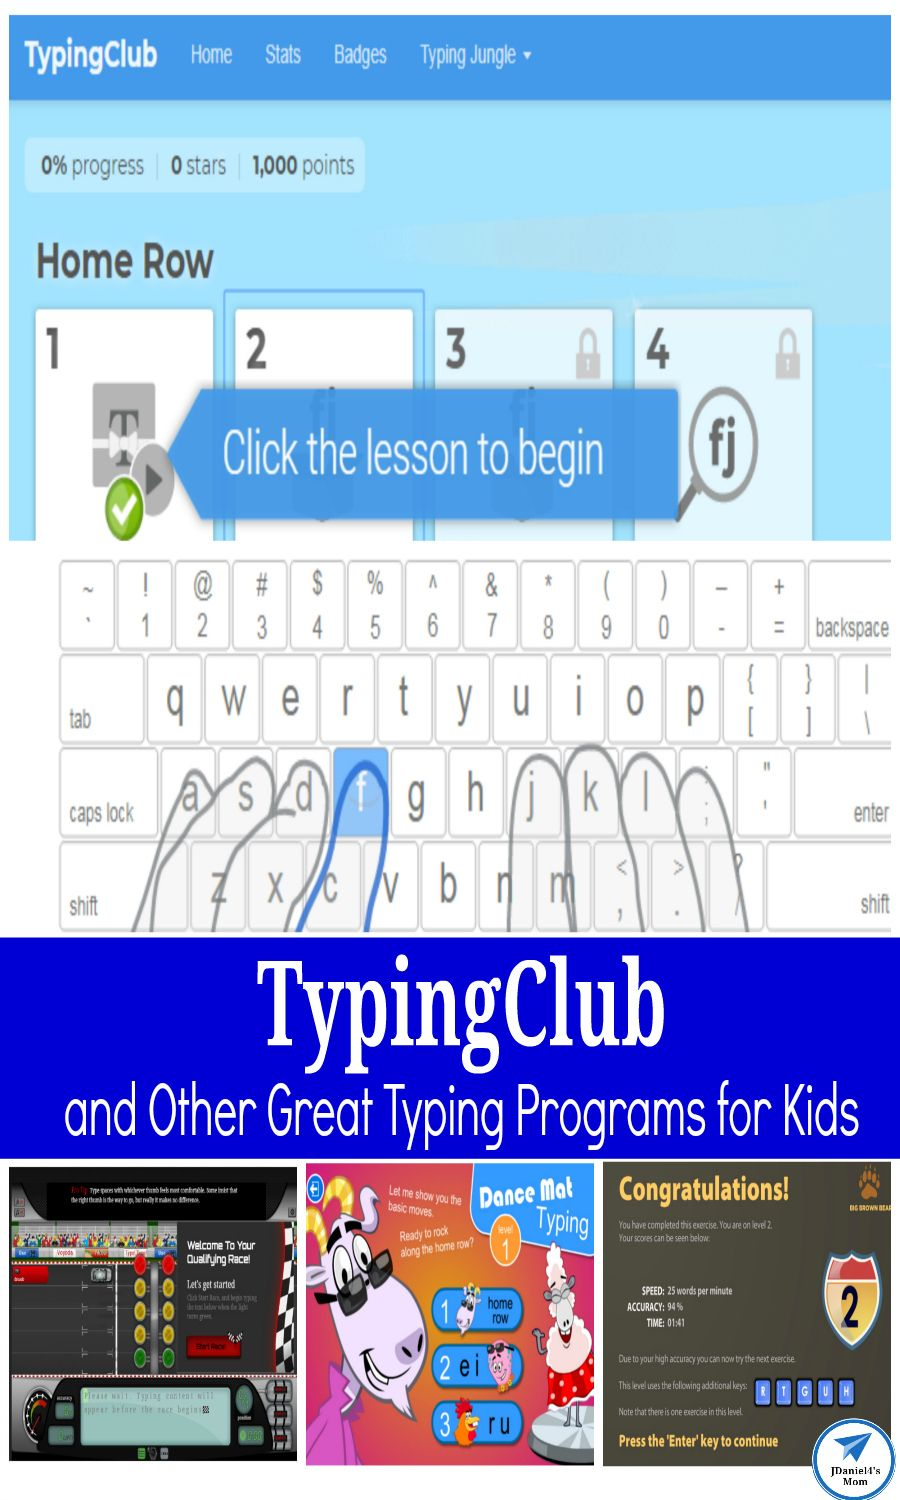 TypingClub and Other Great Typing Programs for Kids ...